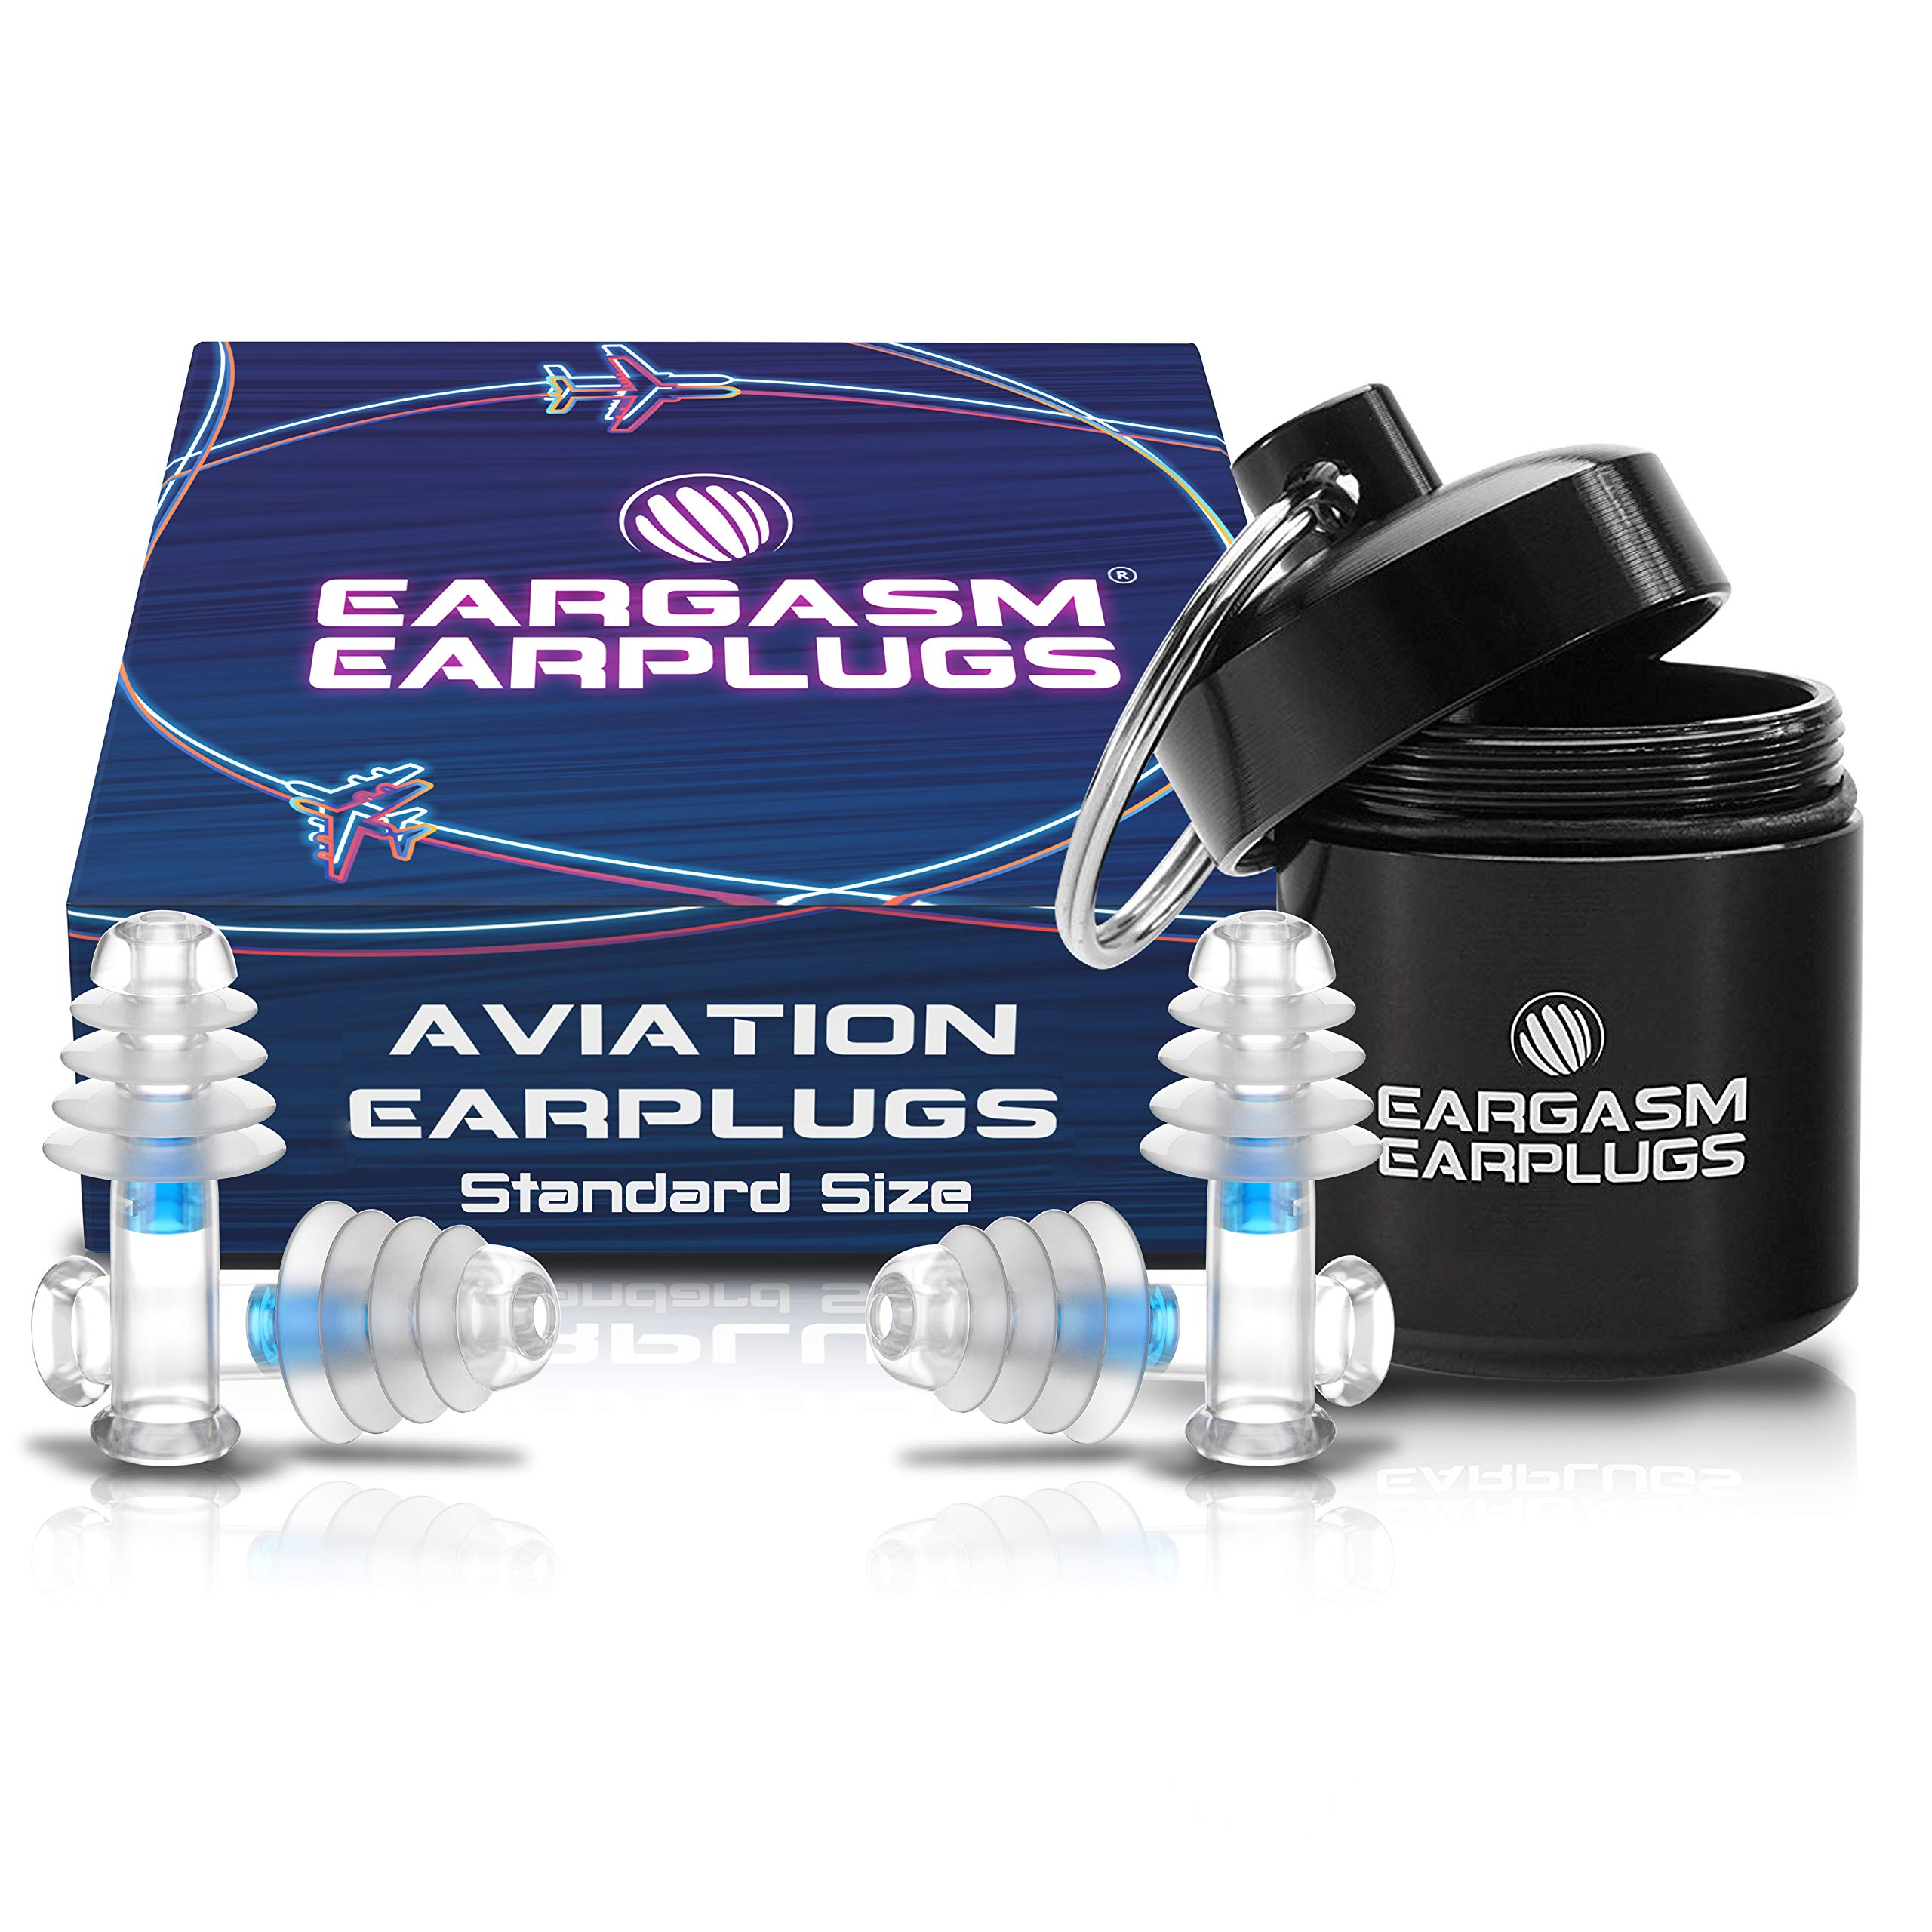 Eargasm Aviation Earplugs - Ear Pain Relief for Air Travel - Standard Size (2 Pairs in Gift Box Packaging) by Eargasm